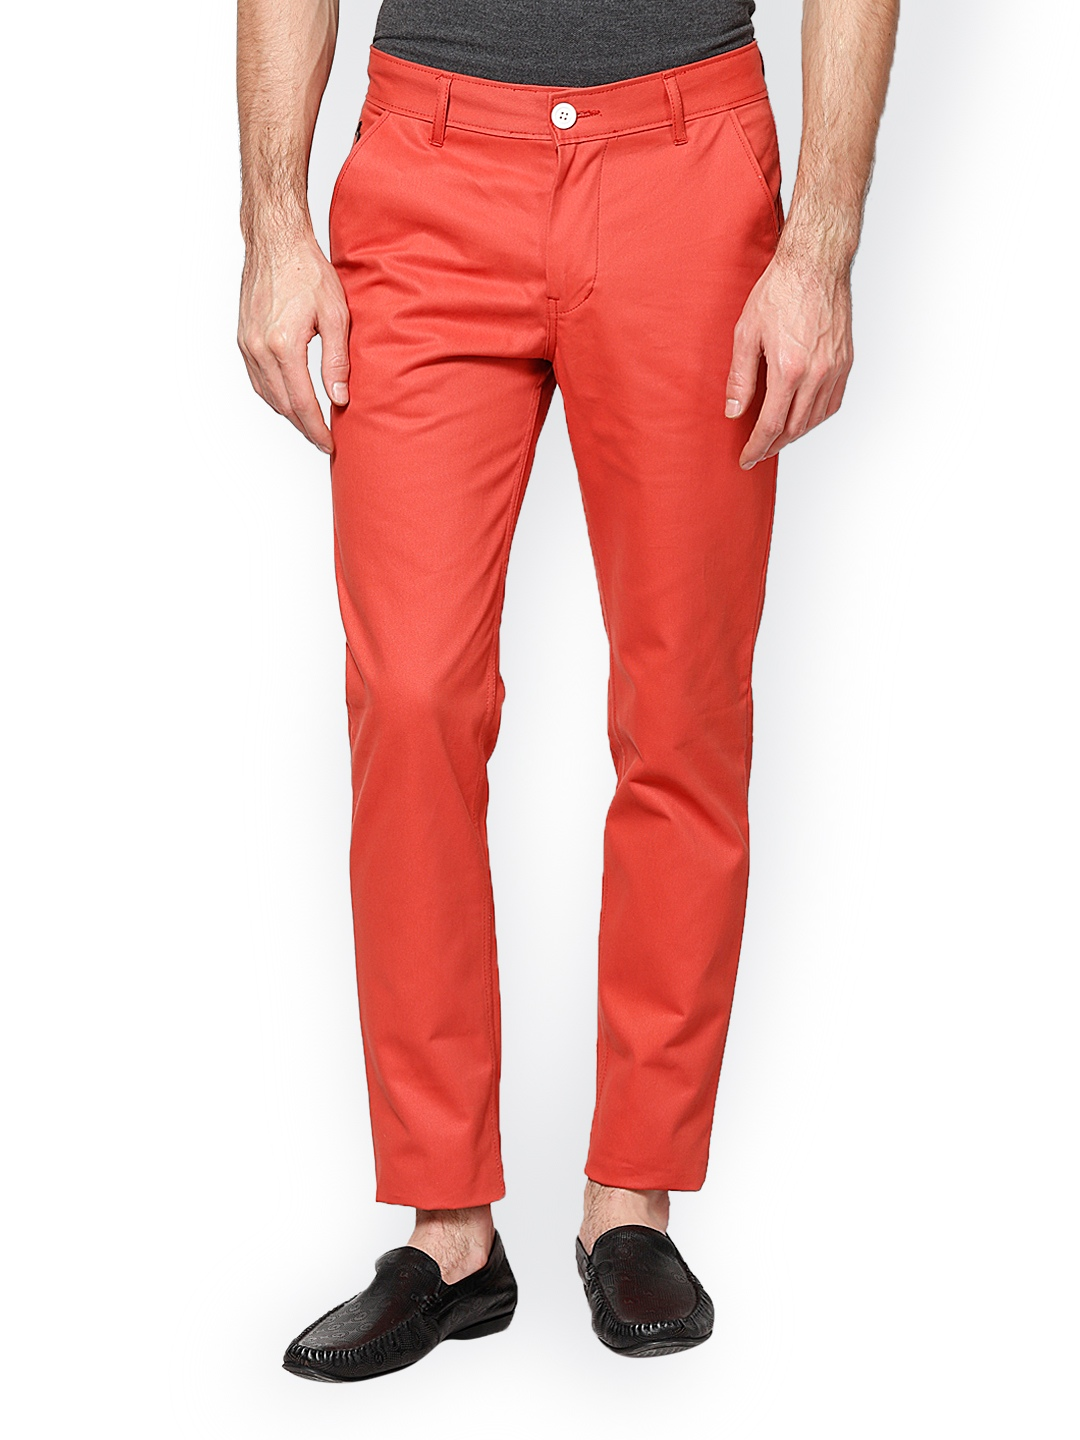 New Listing PacSun Burgundy Red Pants Khakis Chinos Slim Fit Mens 34 x 32 Stretch E PacSun · 34 · $ or Best Offer Ralph Lauren Polo Mens Red Chinos Size 35W X 30L. Pre-Owned. $ or Best Offer +$ shipping. SPONSORED. KAHALA Hawaiian Islands Mens Red Flat Front Elastic Back Chinos Shorts - Size